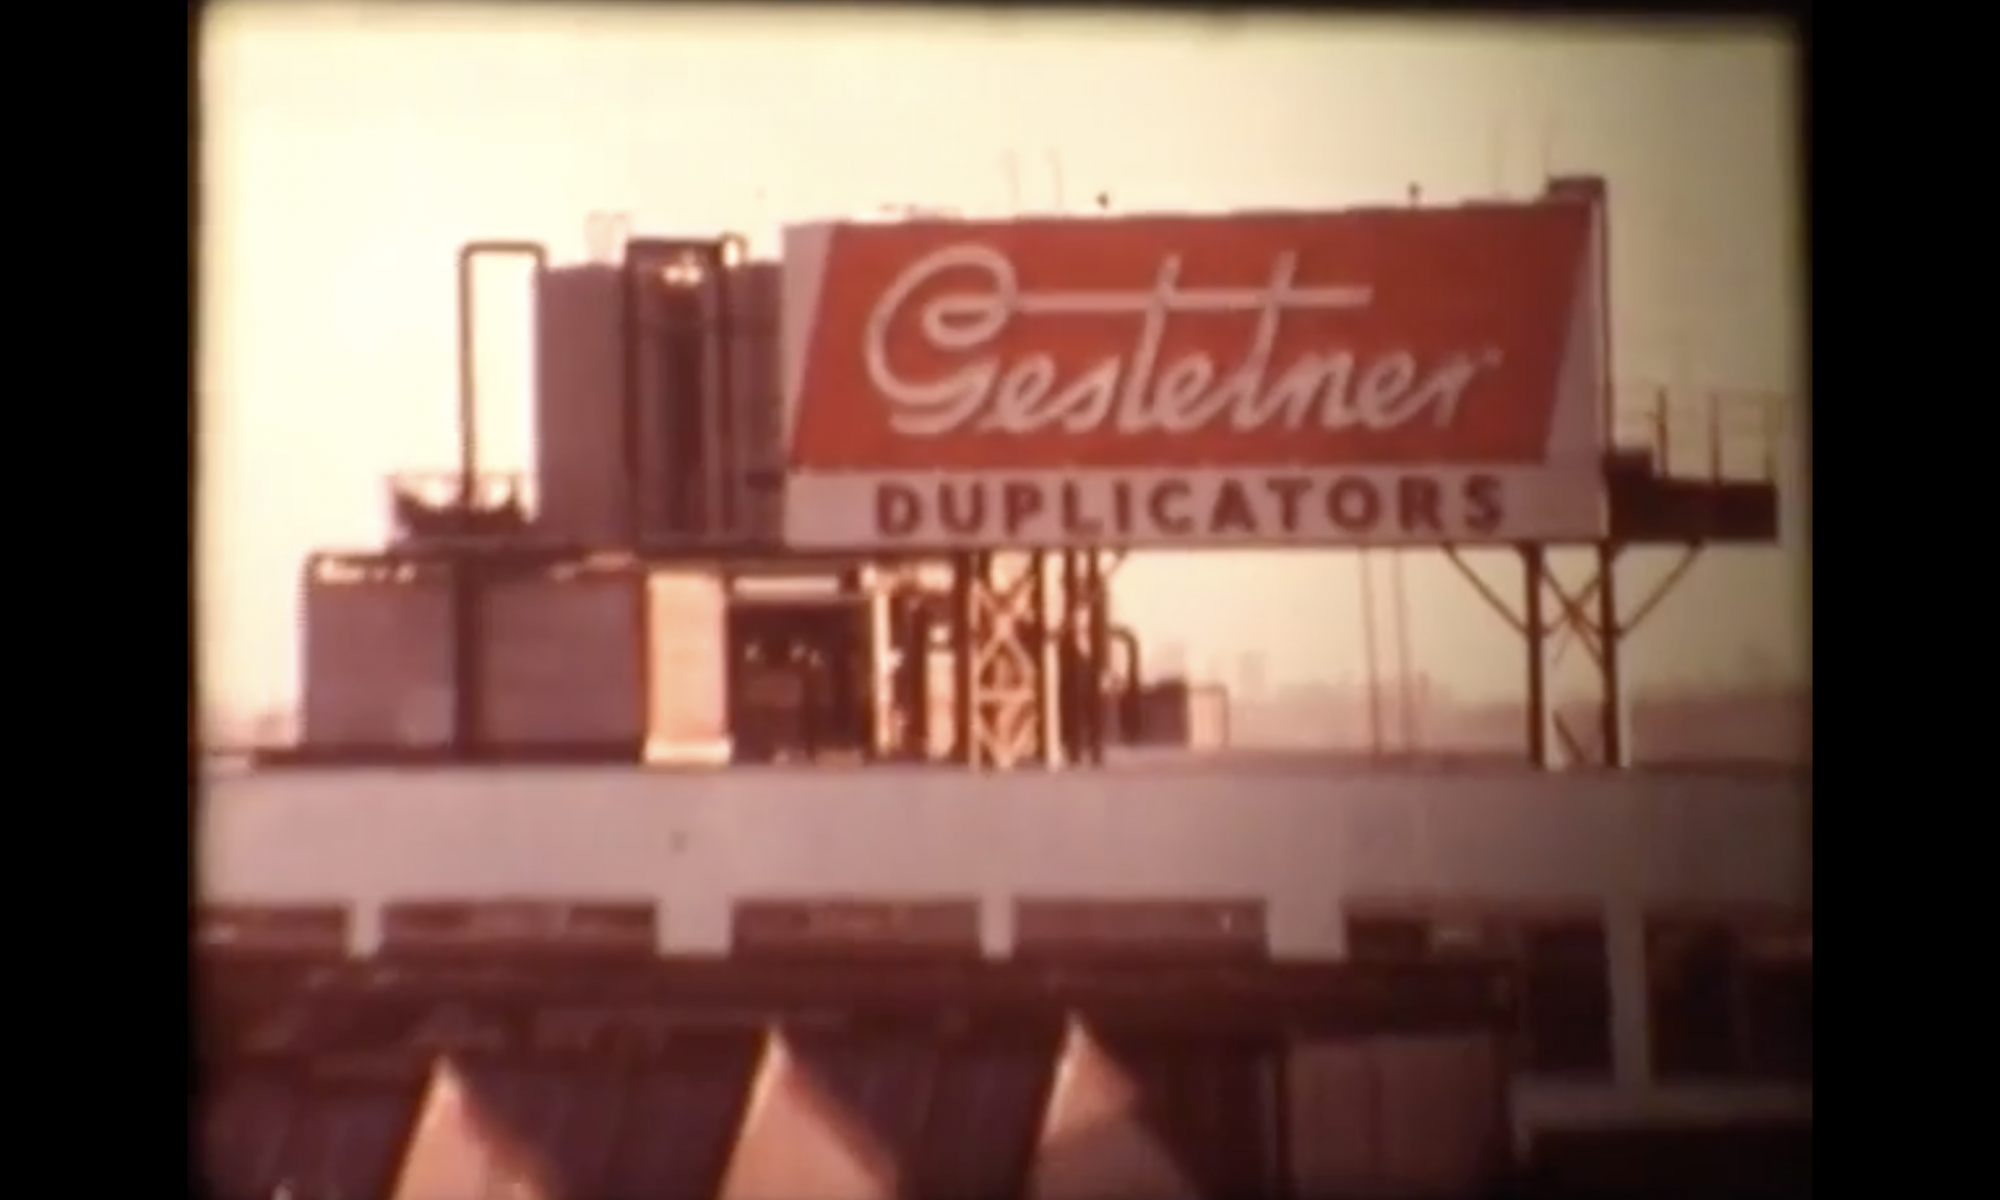 Gestetner Factory photo image